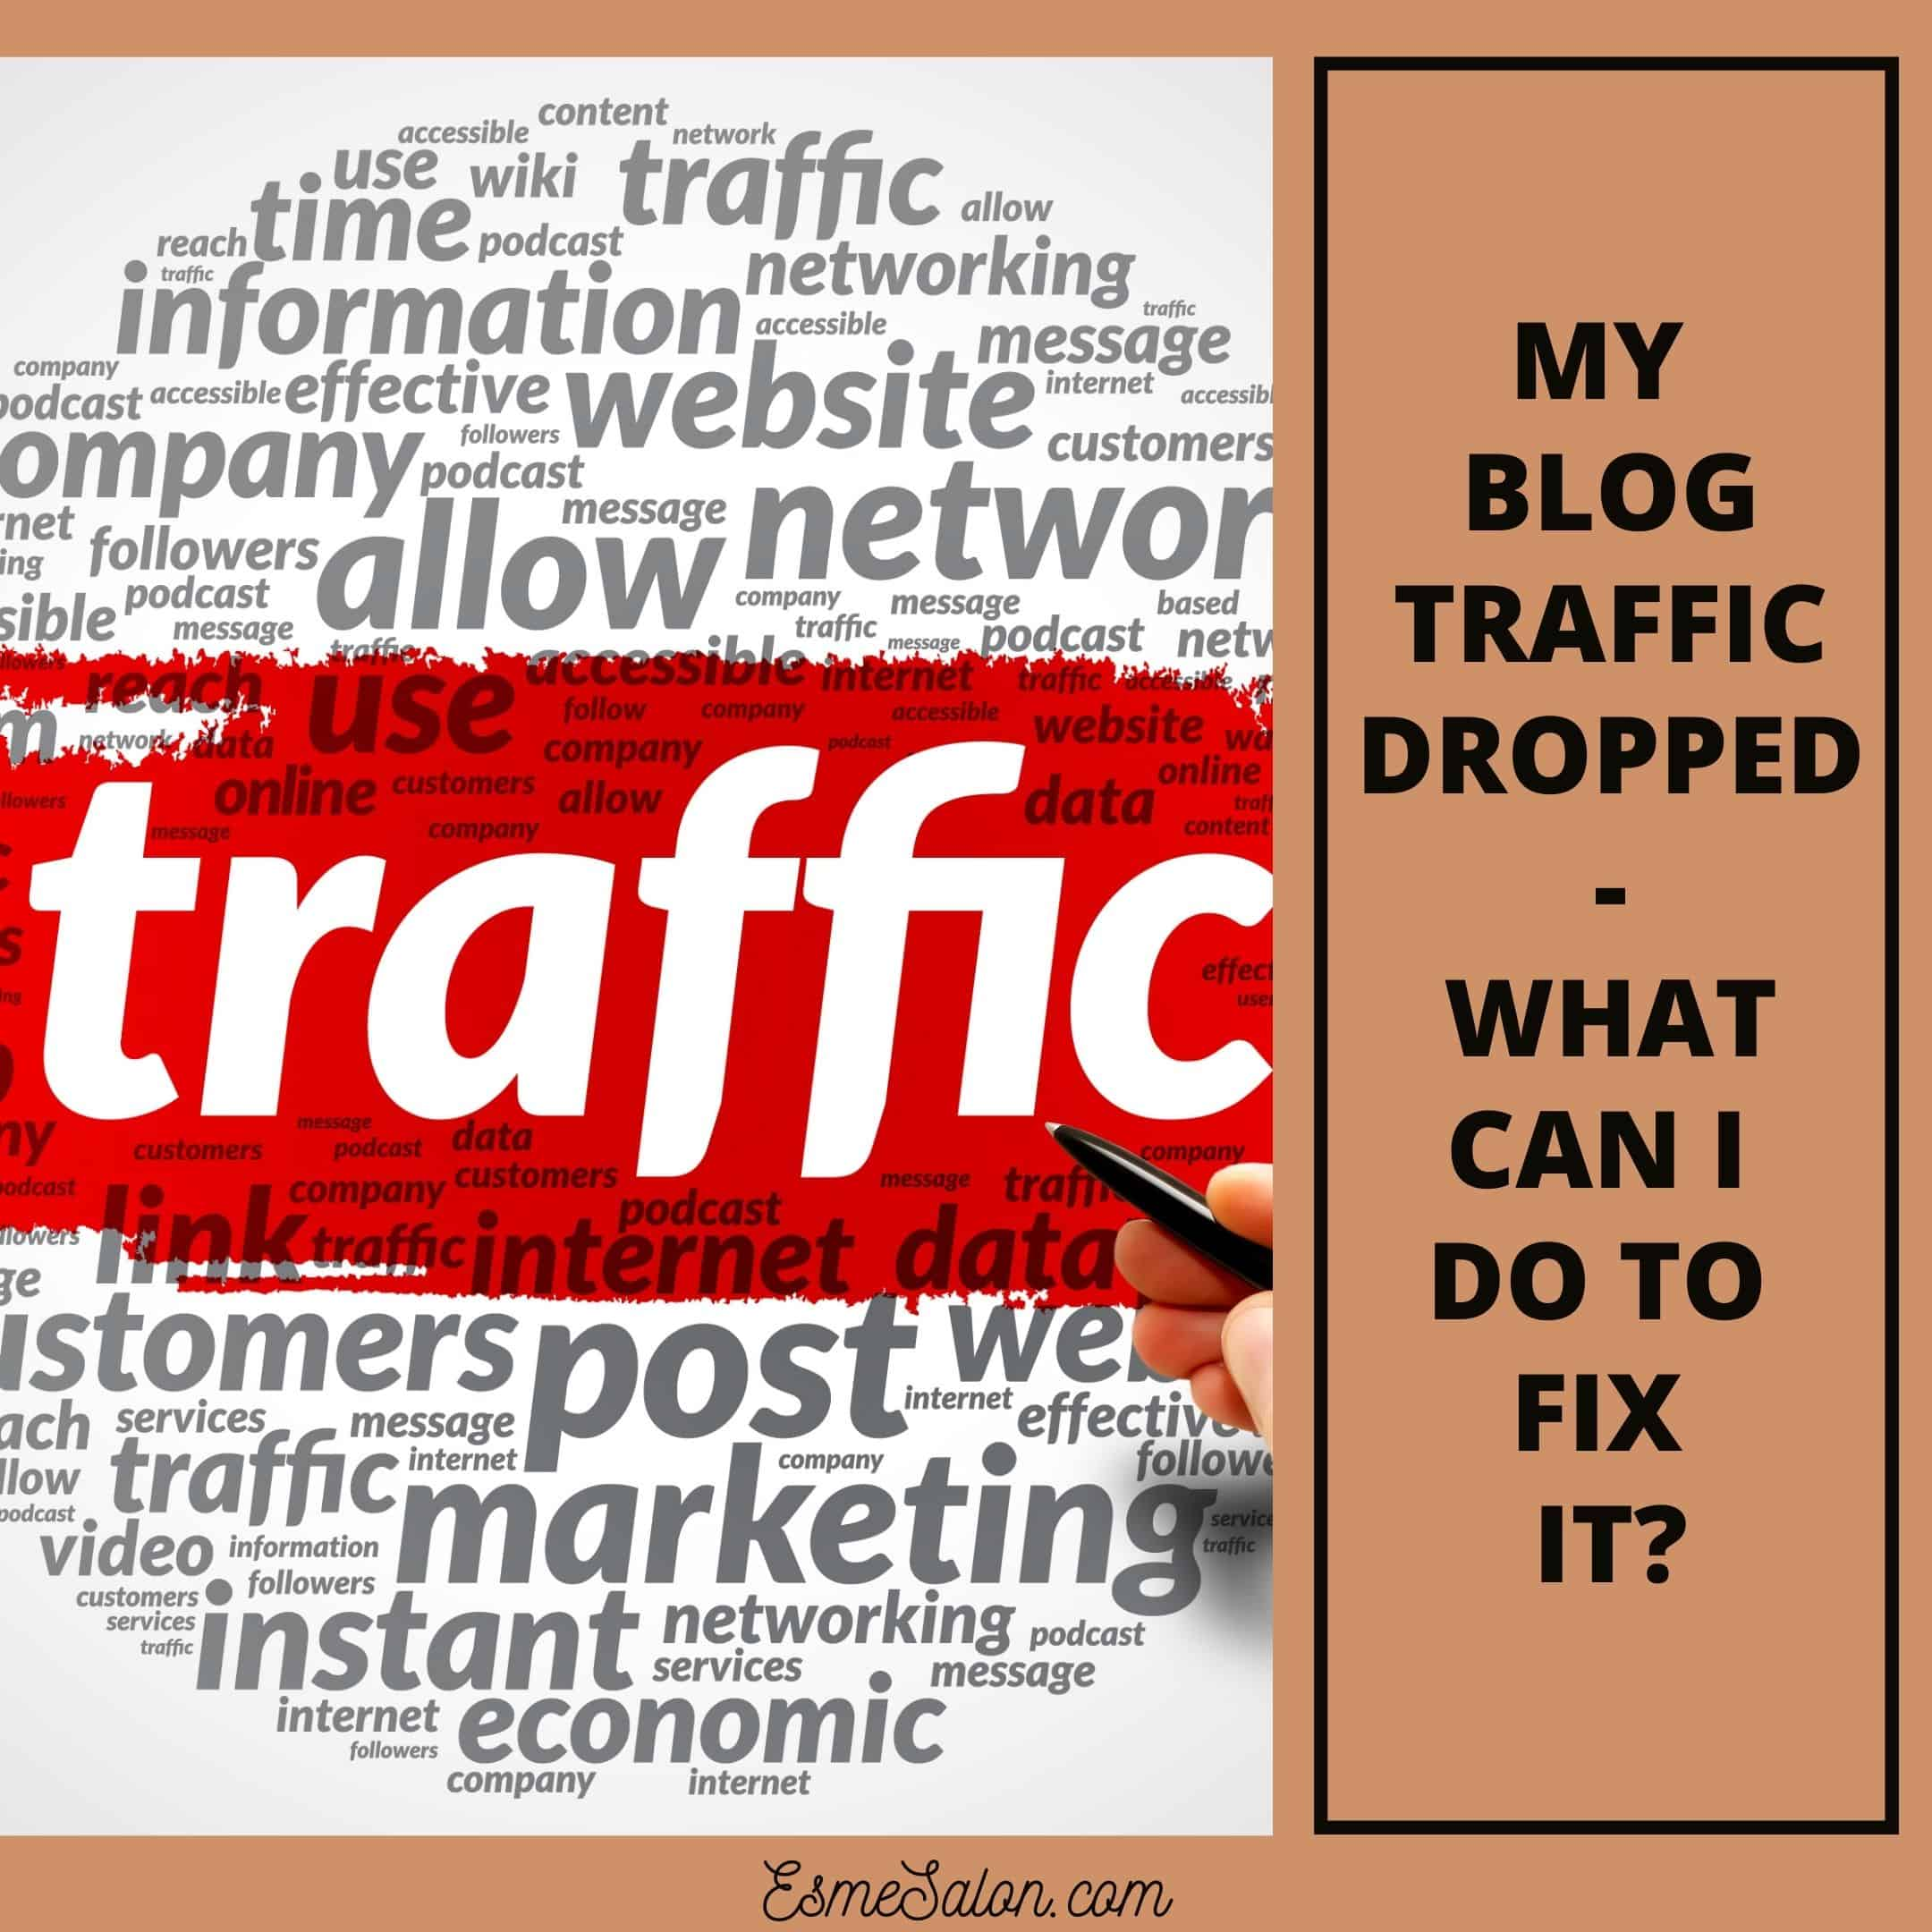 """My blog traffic dropped - a white background page with work """"traffic"""" in white on red insert"""